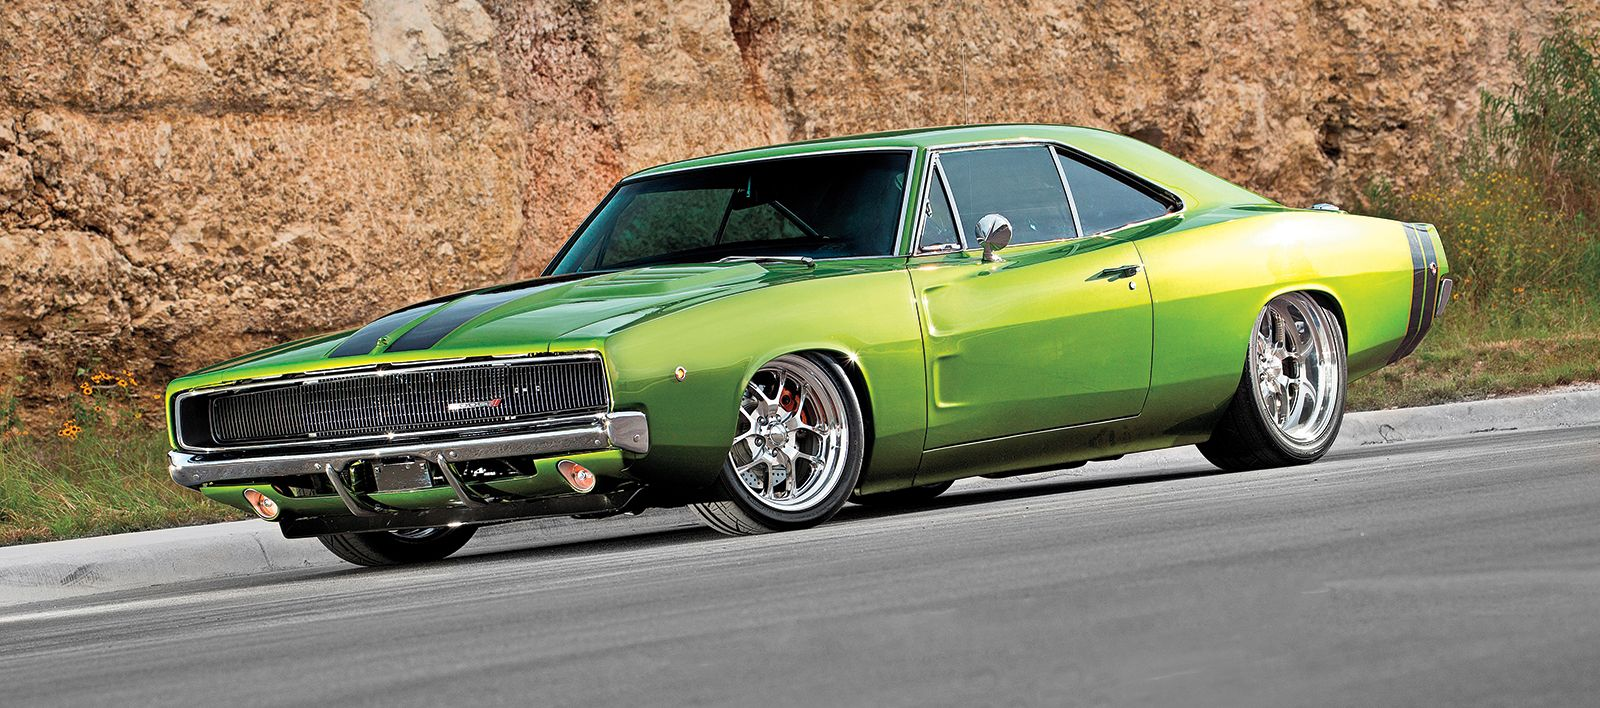 pro tour muscle car on pinterest 1968 dodge charger dodge chargers and muscle cars. Black Bedroom Furniture Sets. Home Design Ideas